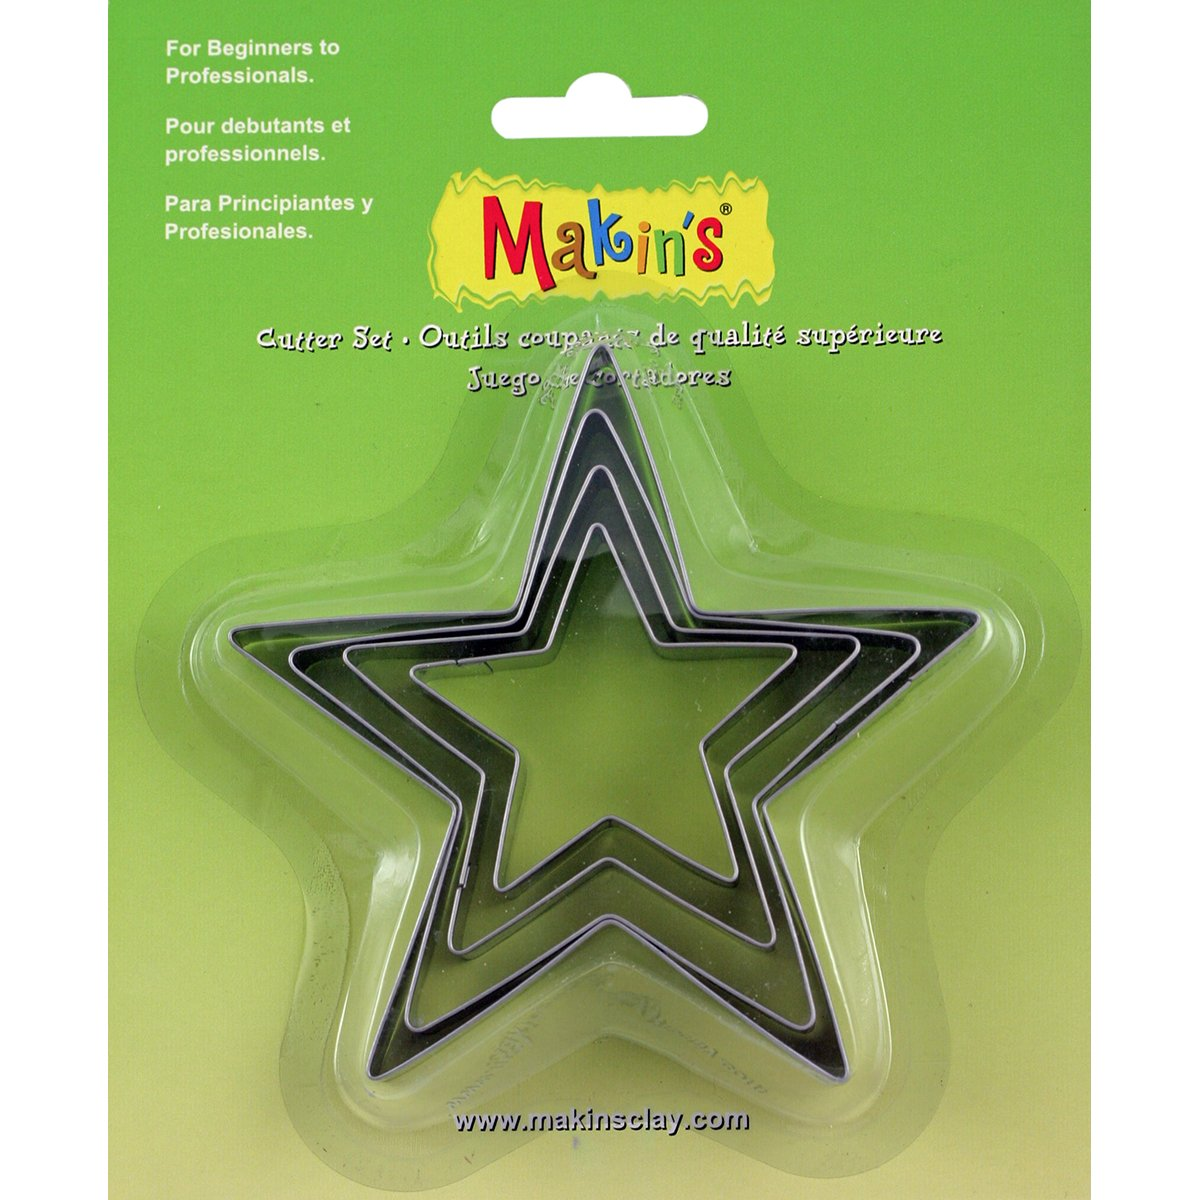 Makin's USA M365-04 Makin's Clay Cutters 4/Pkg-Star by Makin's USA